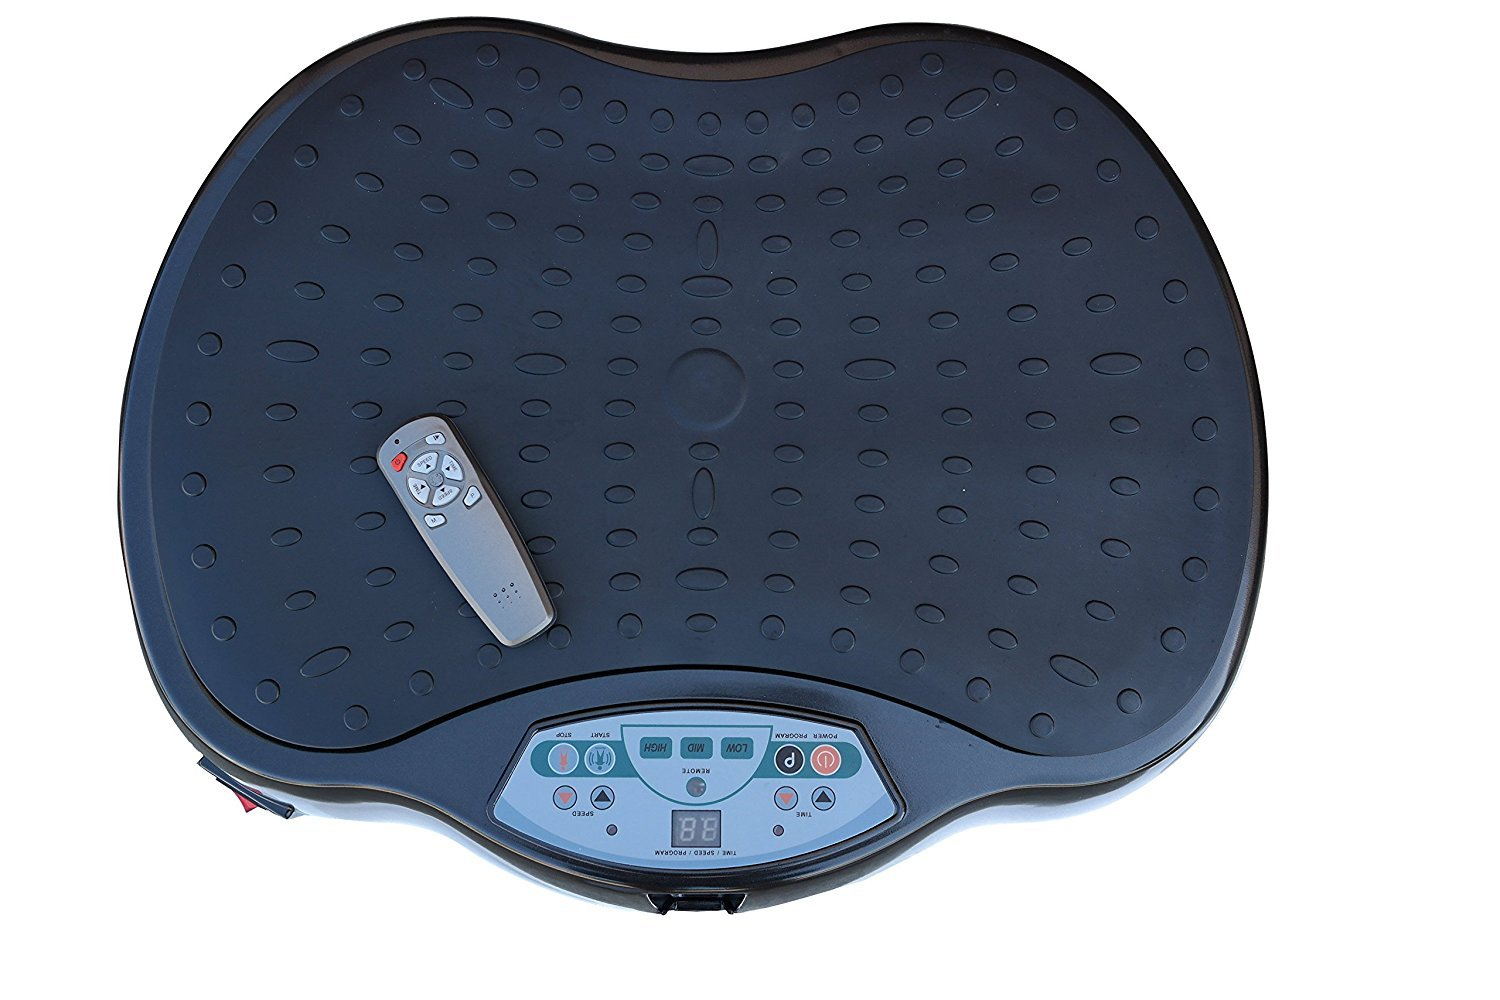 2010 Crazy Fit Massager Full Body Vibration Exercise Machine by Luyuan Inc by Luyuan Inc (Image #2)